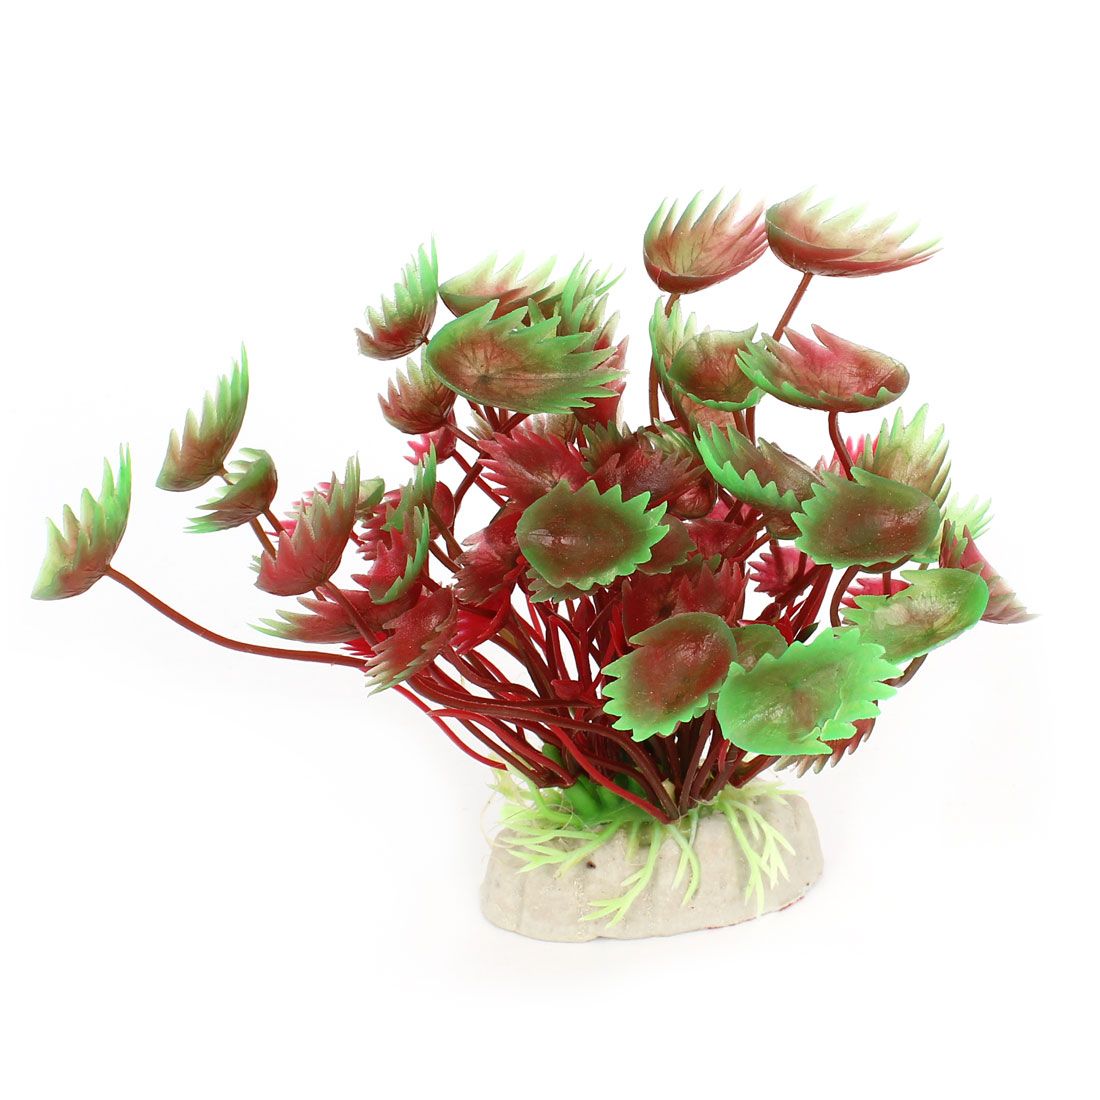 "4.3"" High Artificial Green Burgundy Aquatic Grass Plant Decoration for Fish Tank"